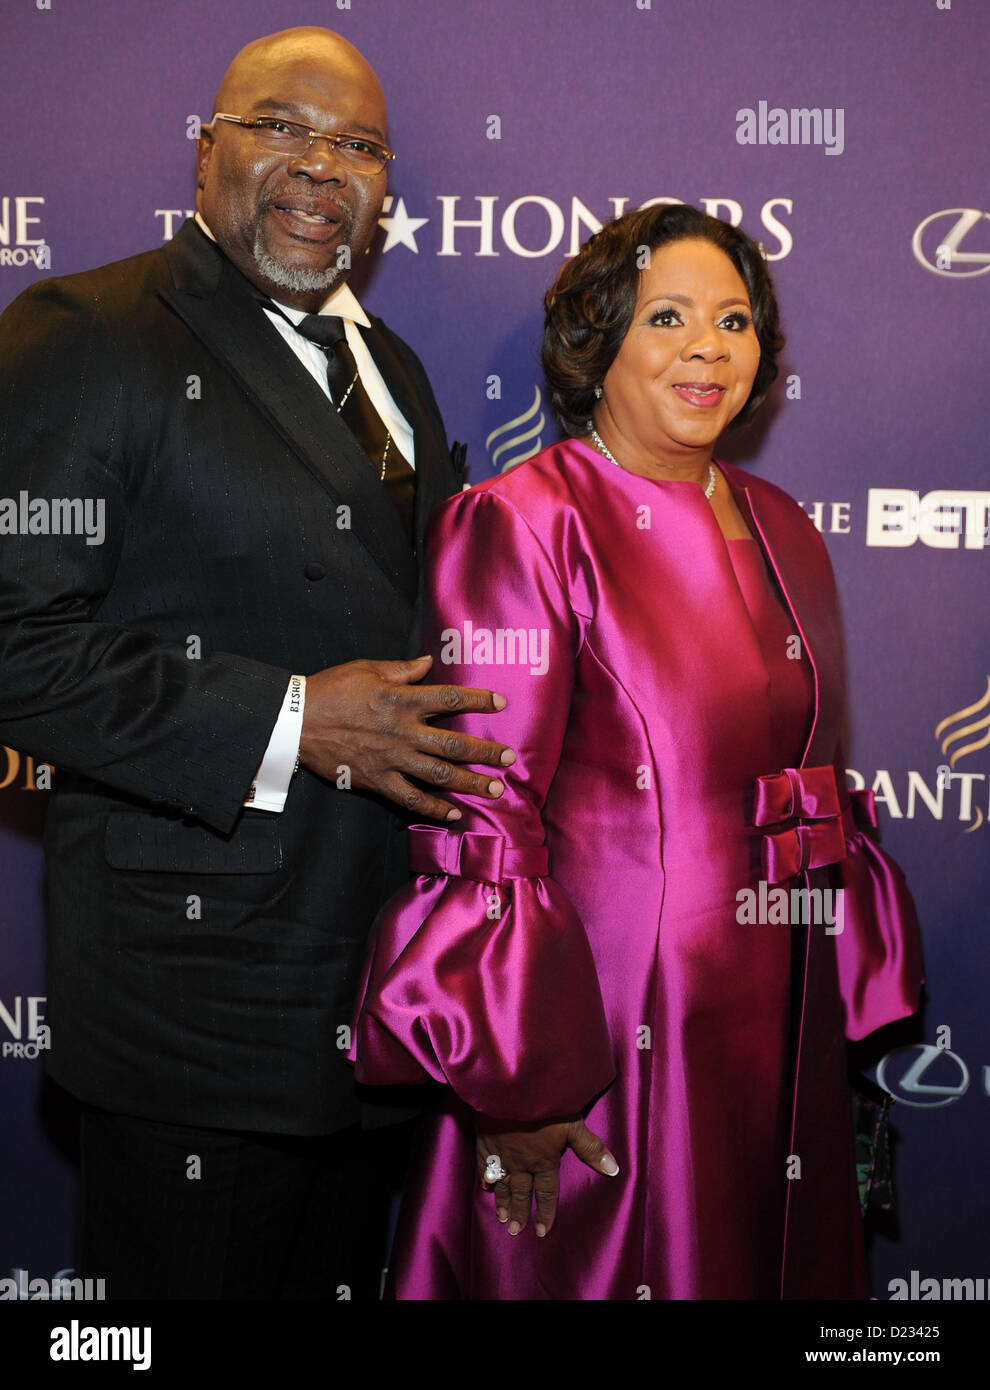 Bishop T D Jakes Honoree Wife Stock Photos & Bishop T D Jakes